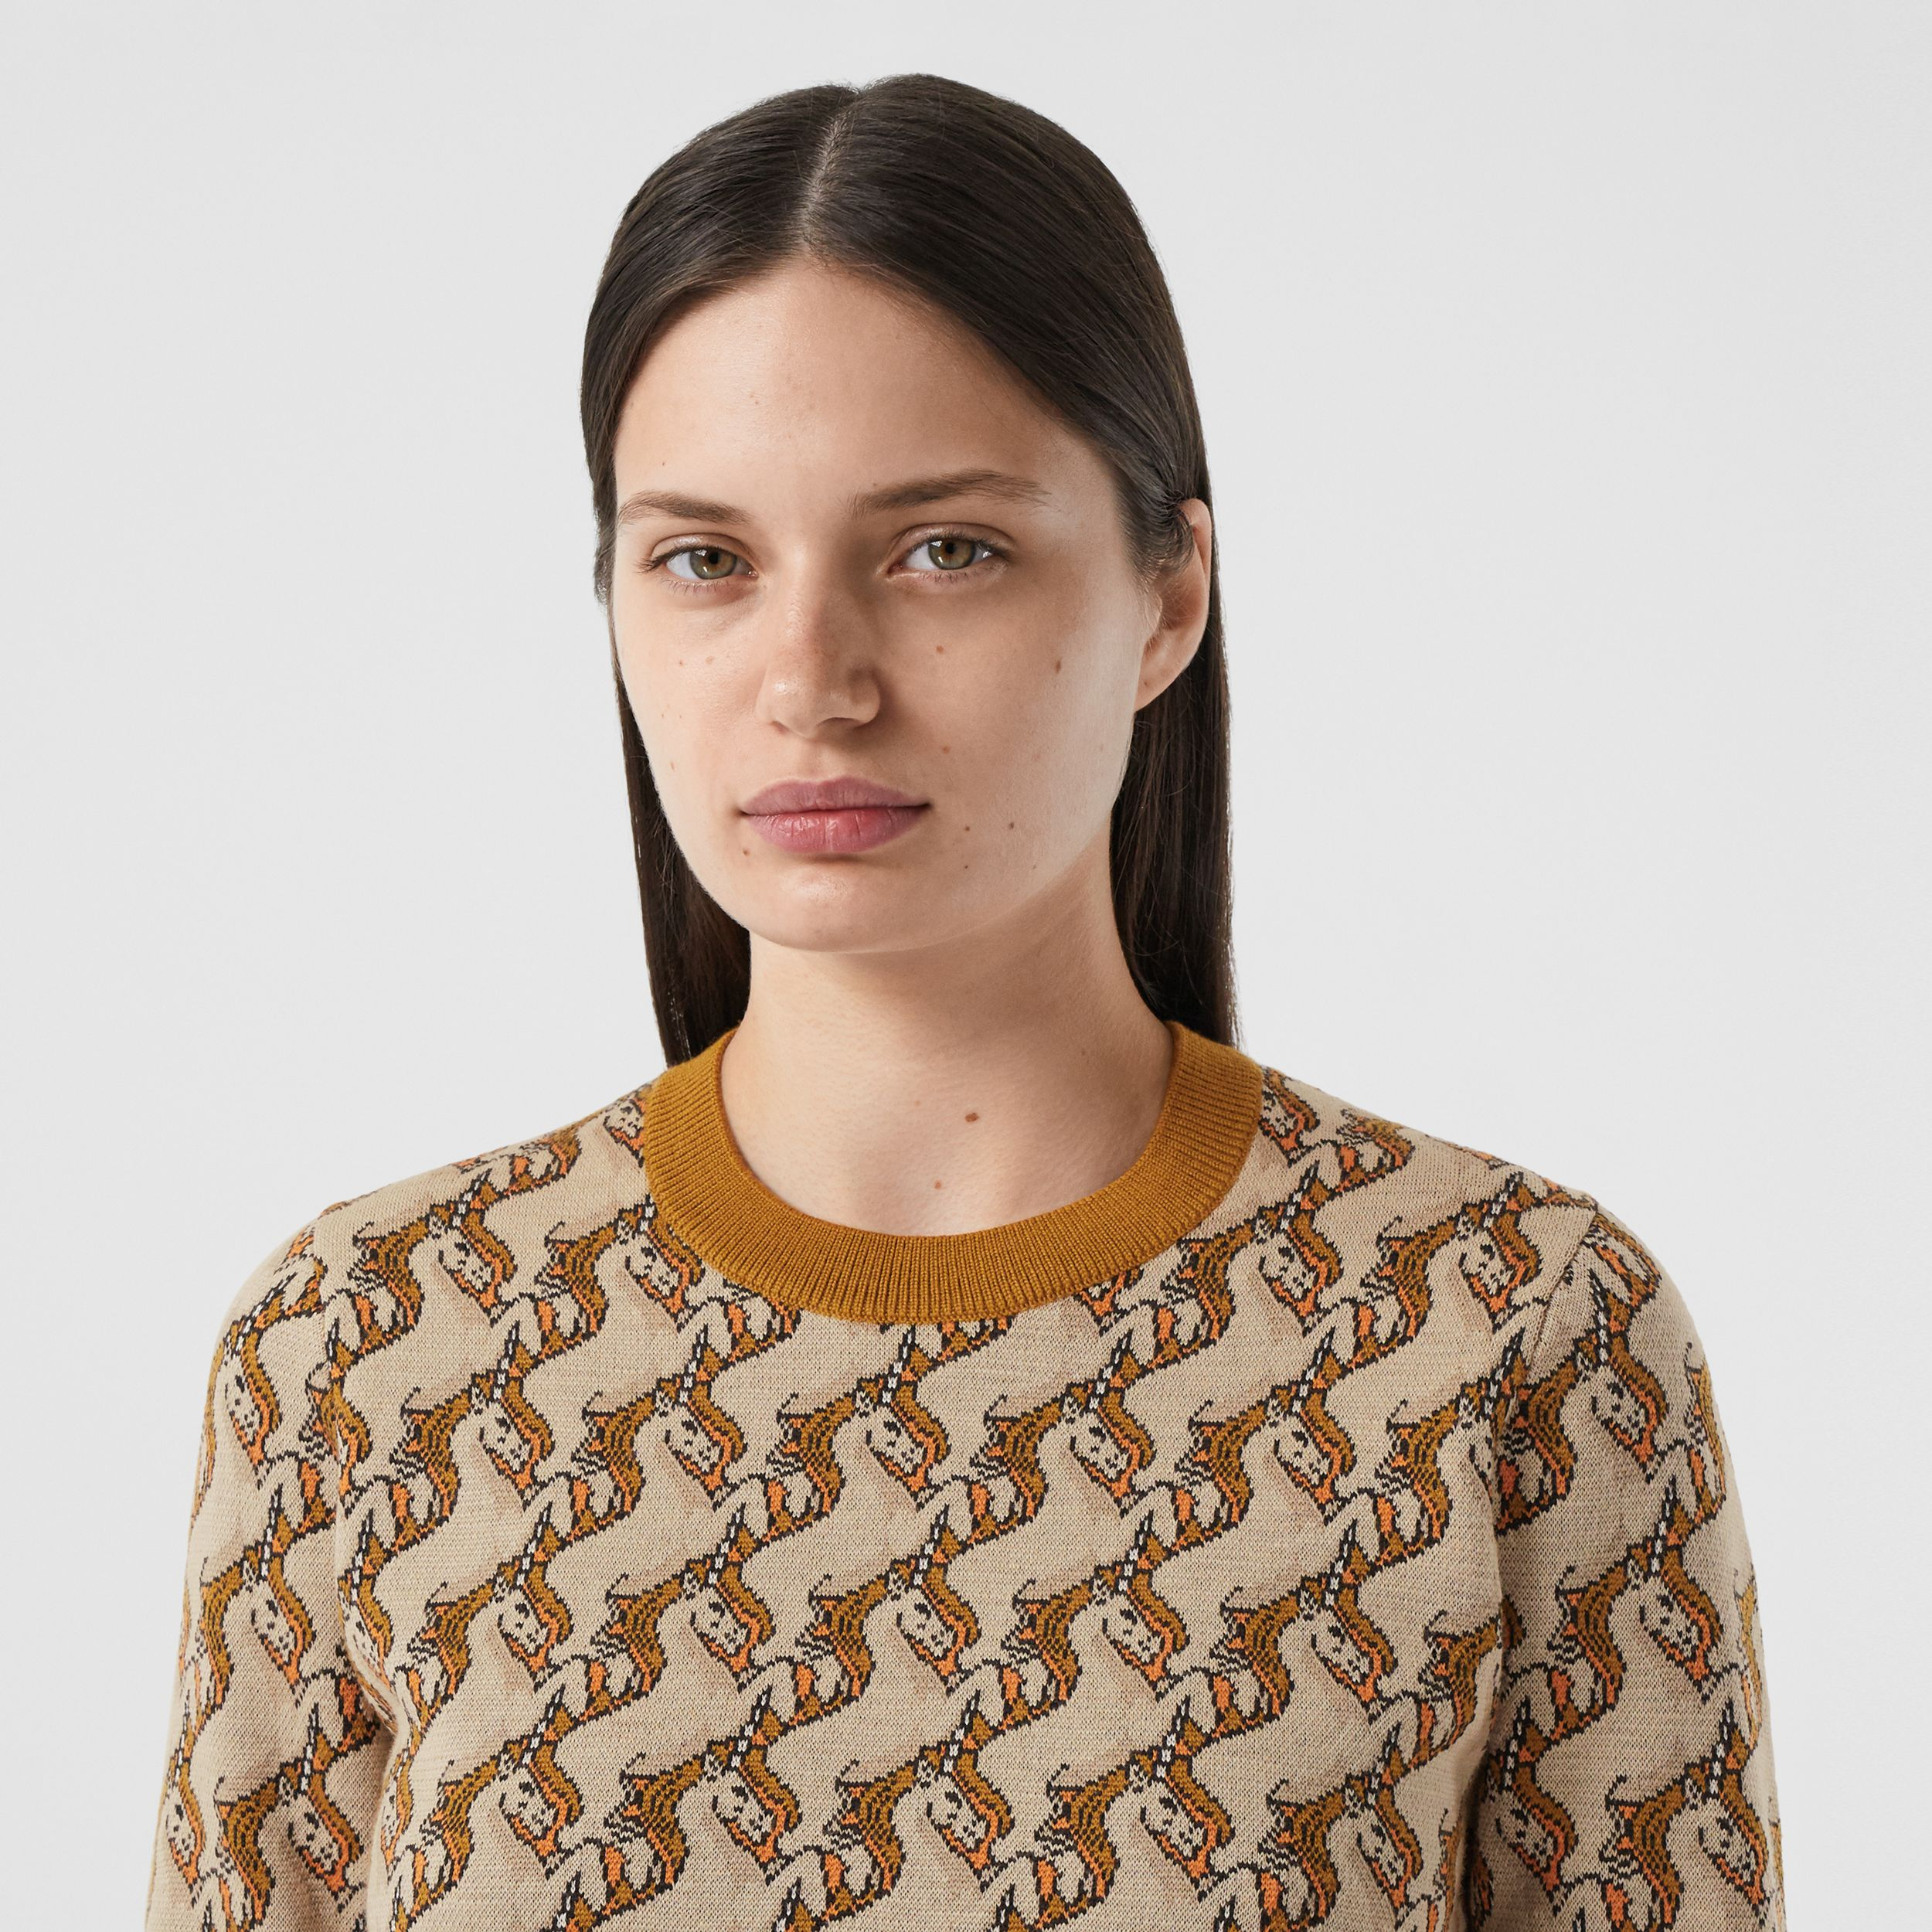 Unicorn Merino Wool Blend Jacquard Sweater in Ecru - Women | Burberry - 2